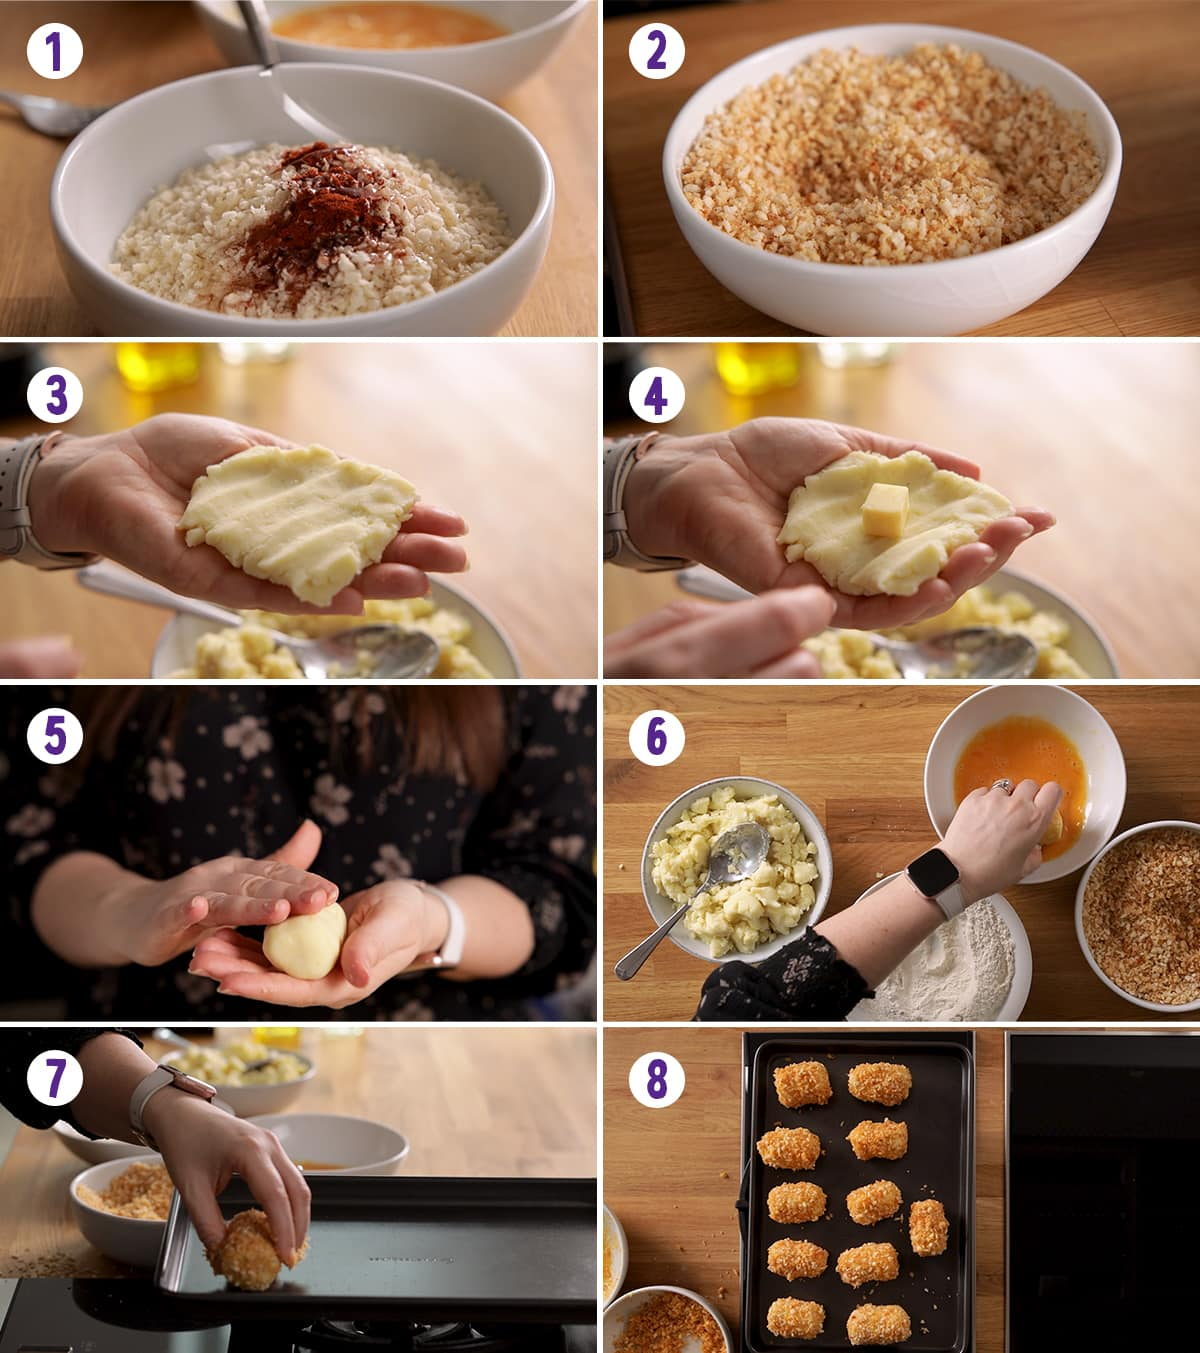 8 image collage showing how to make potato croquettes